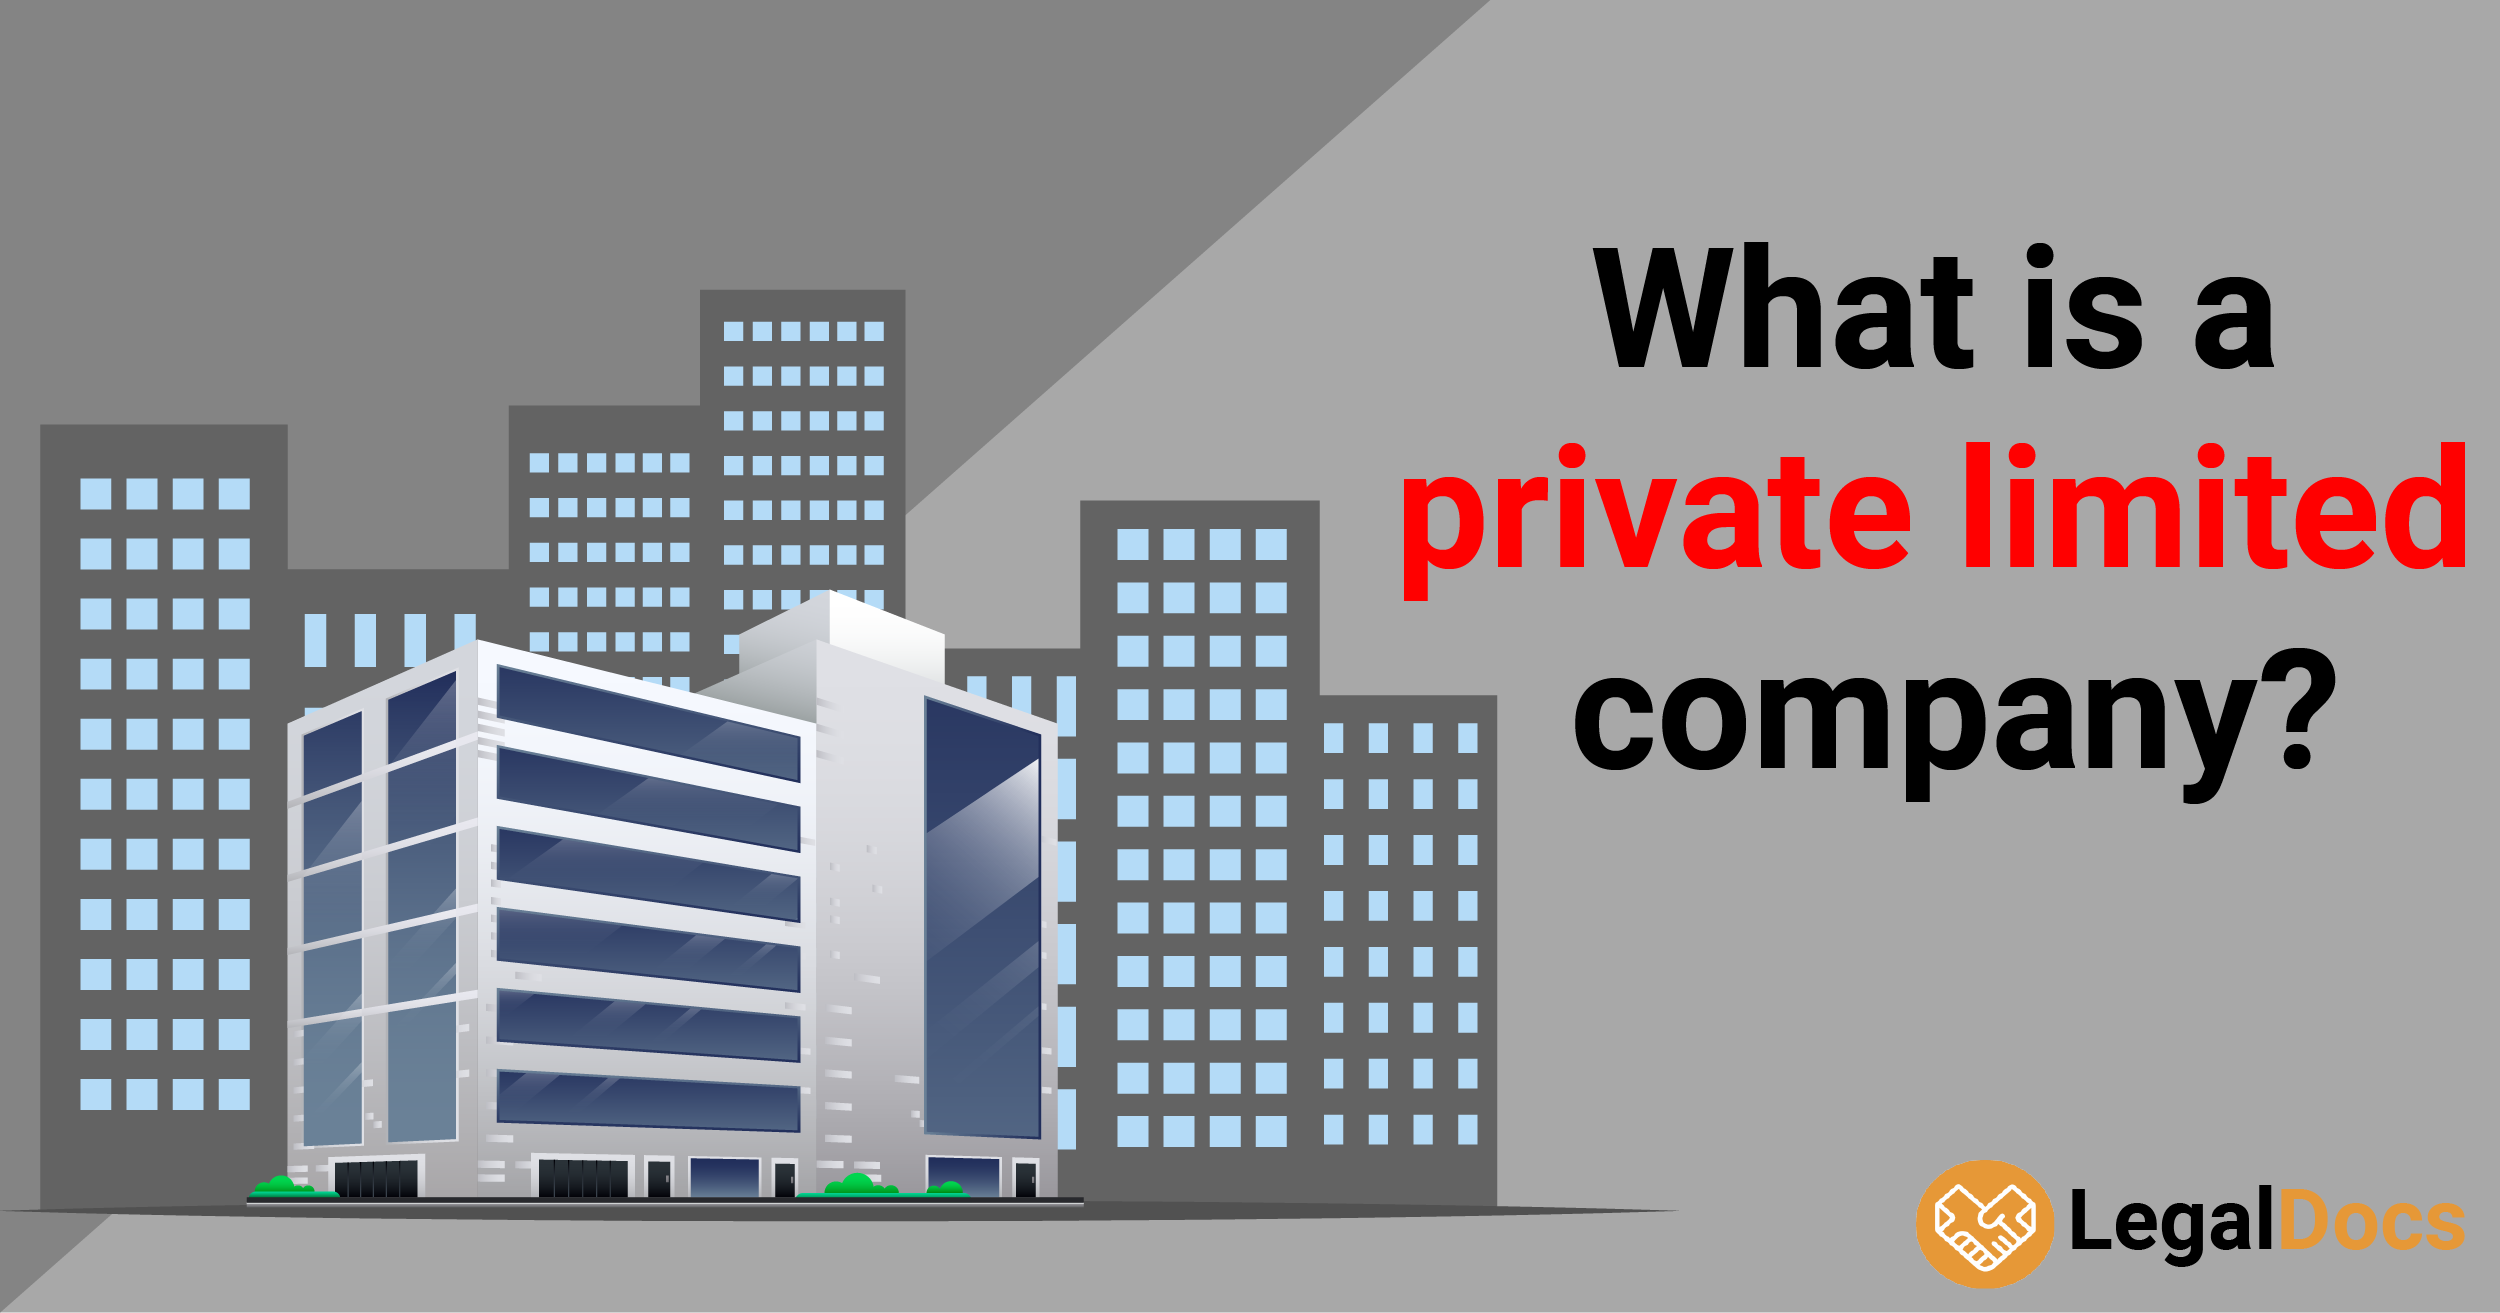 What is a Private Limited Company? - LegalDocs